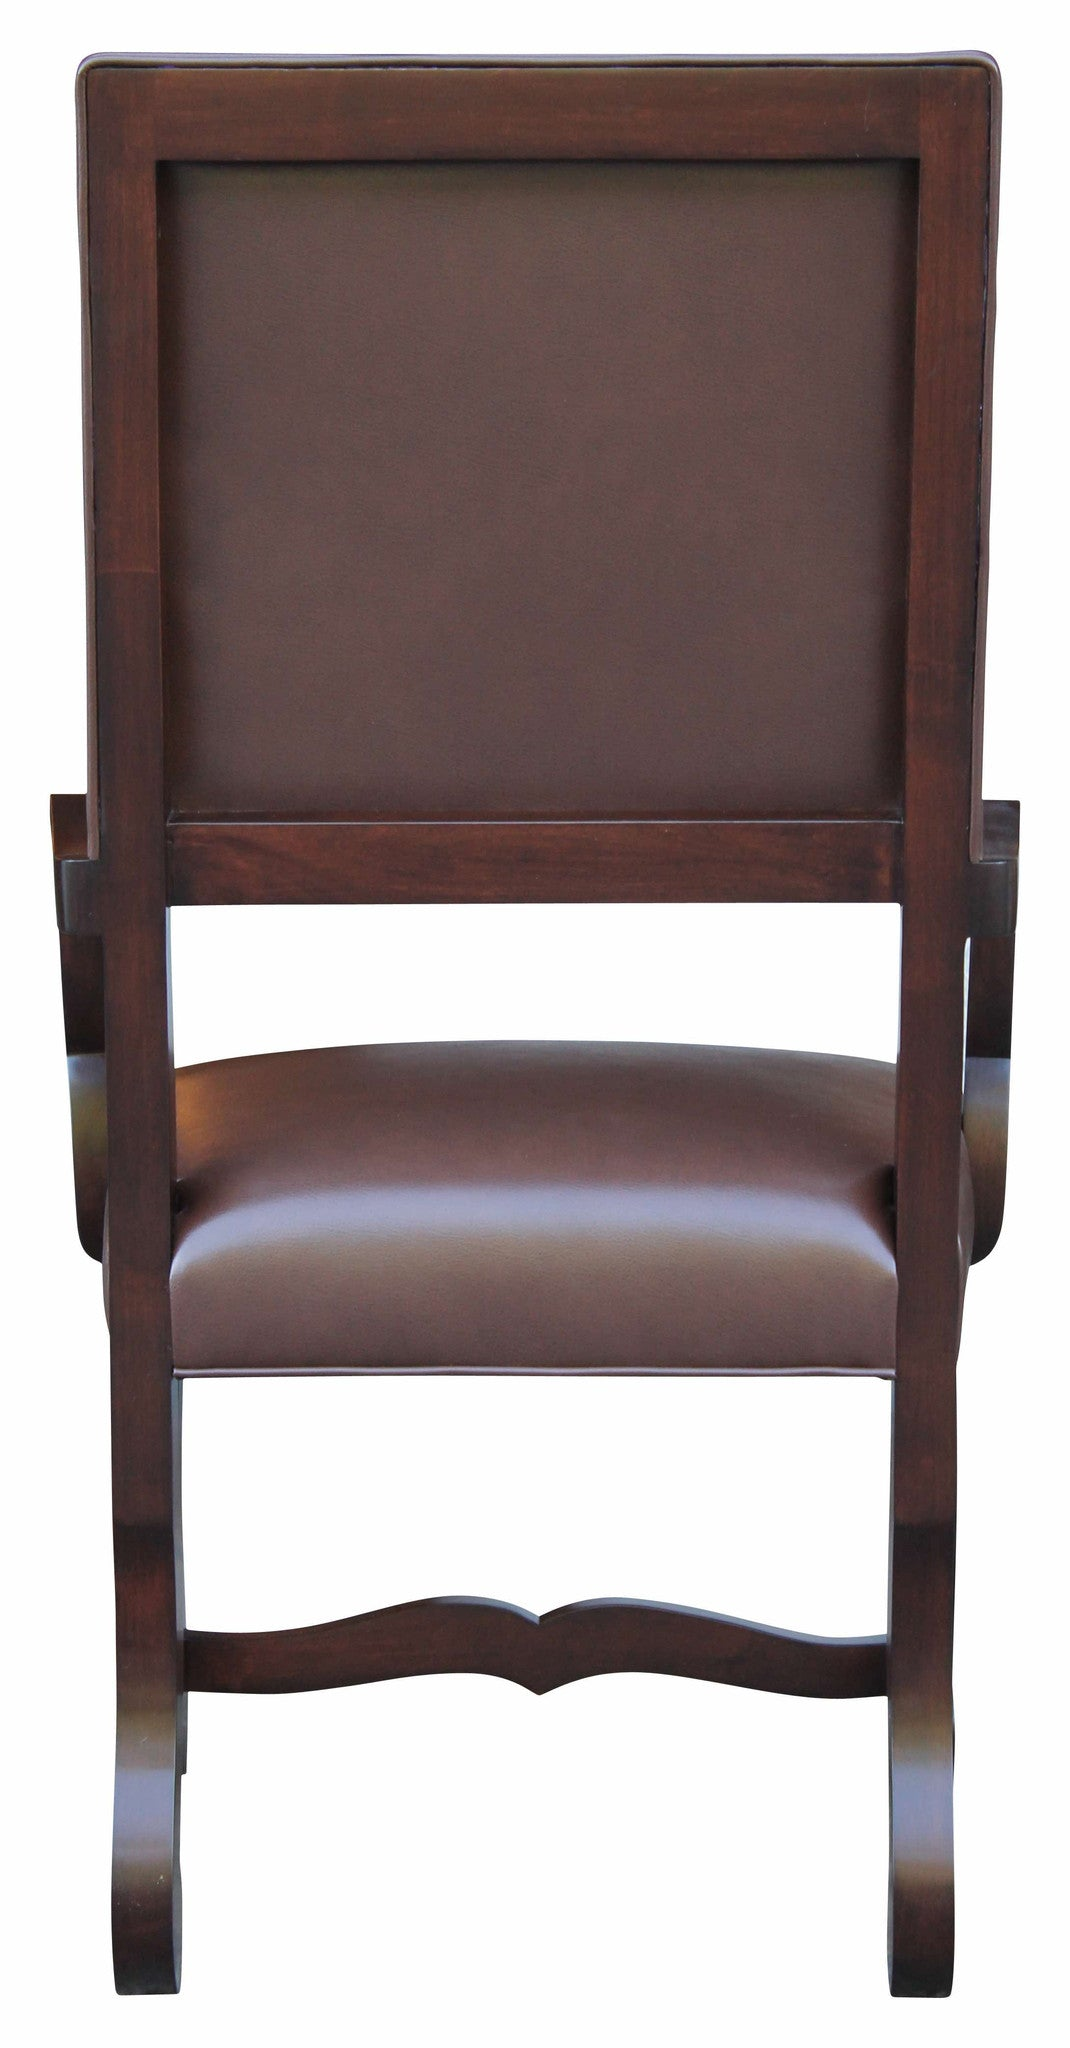 ... Spanish Colonial Dining Chair  sc 1 st  Mortise u0026 Tenon & Spanish Colonial Dining Chair u2013 Mortise u0026 Tenon